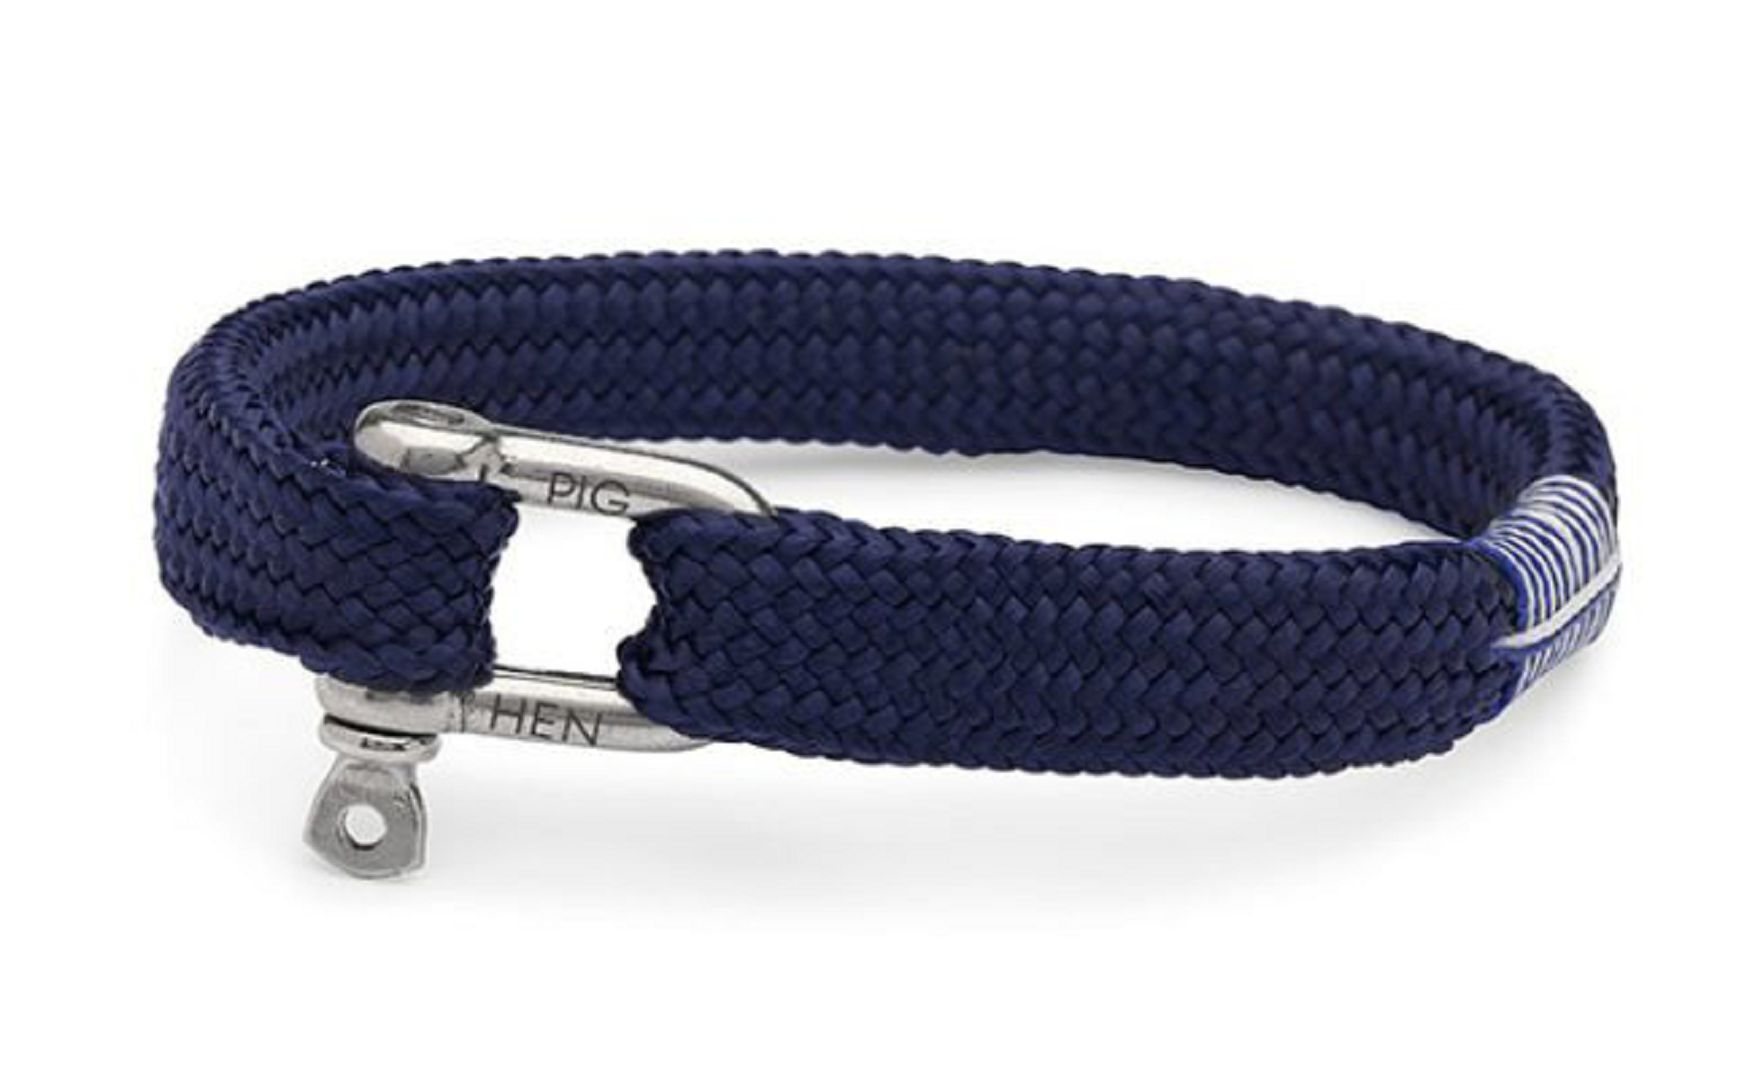 Sharp simon navy silver shackl